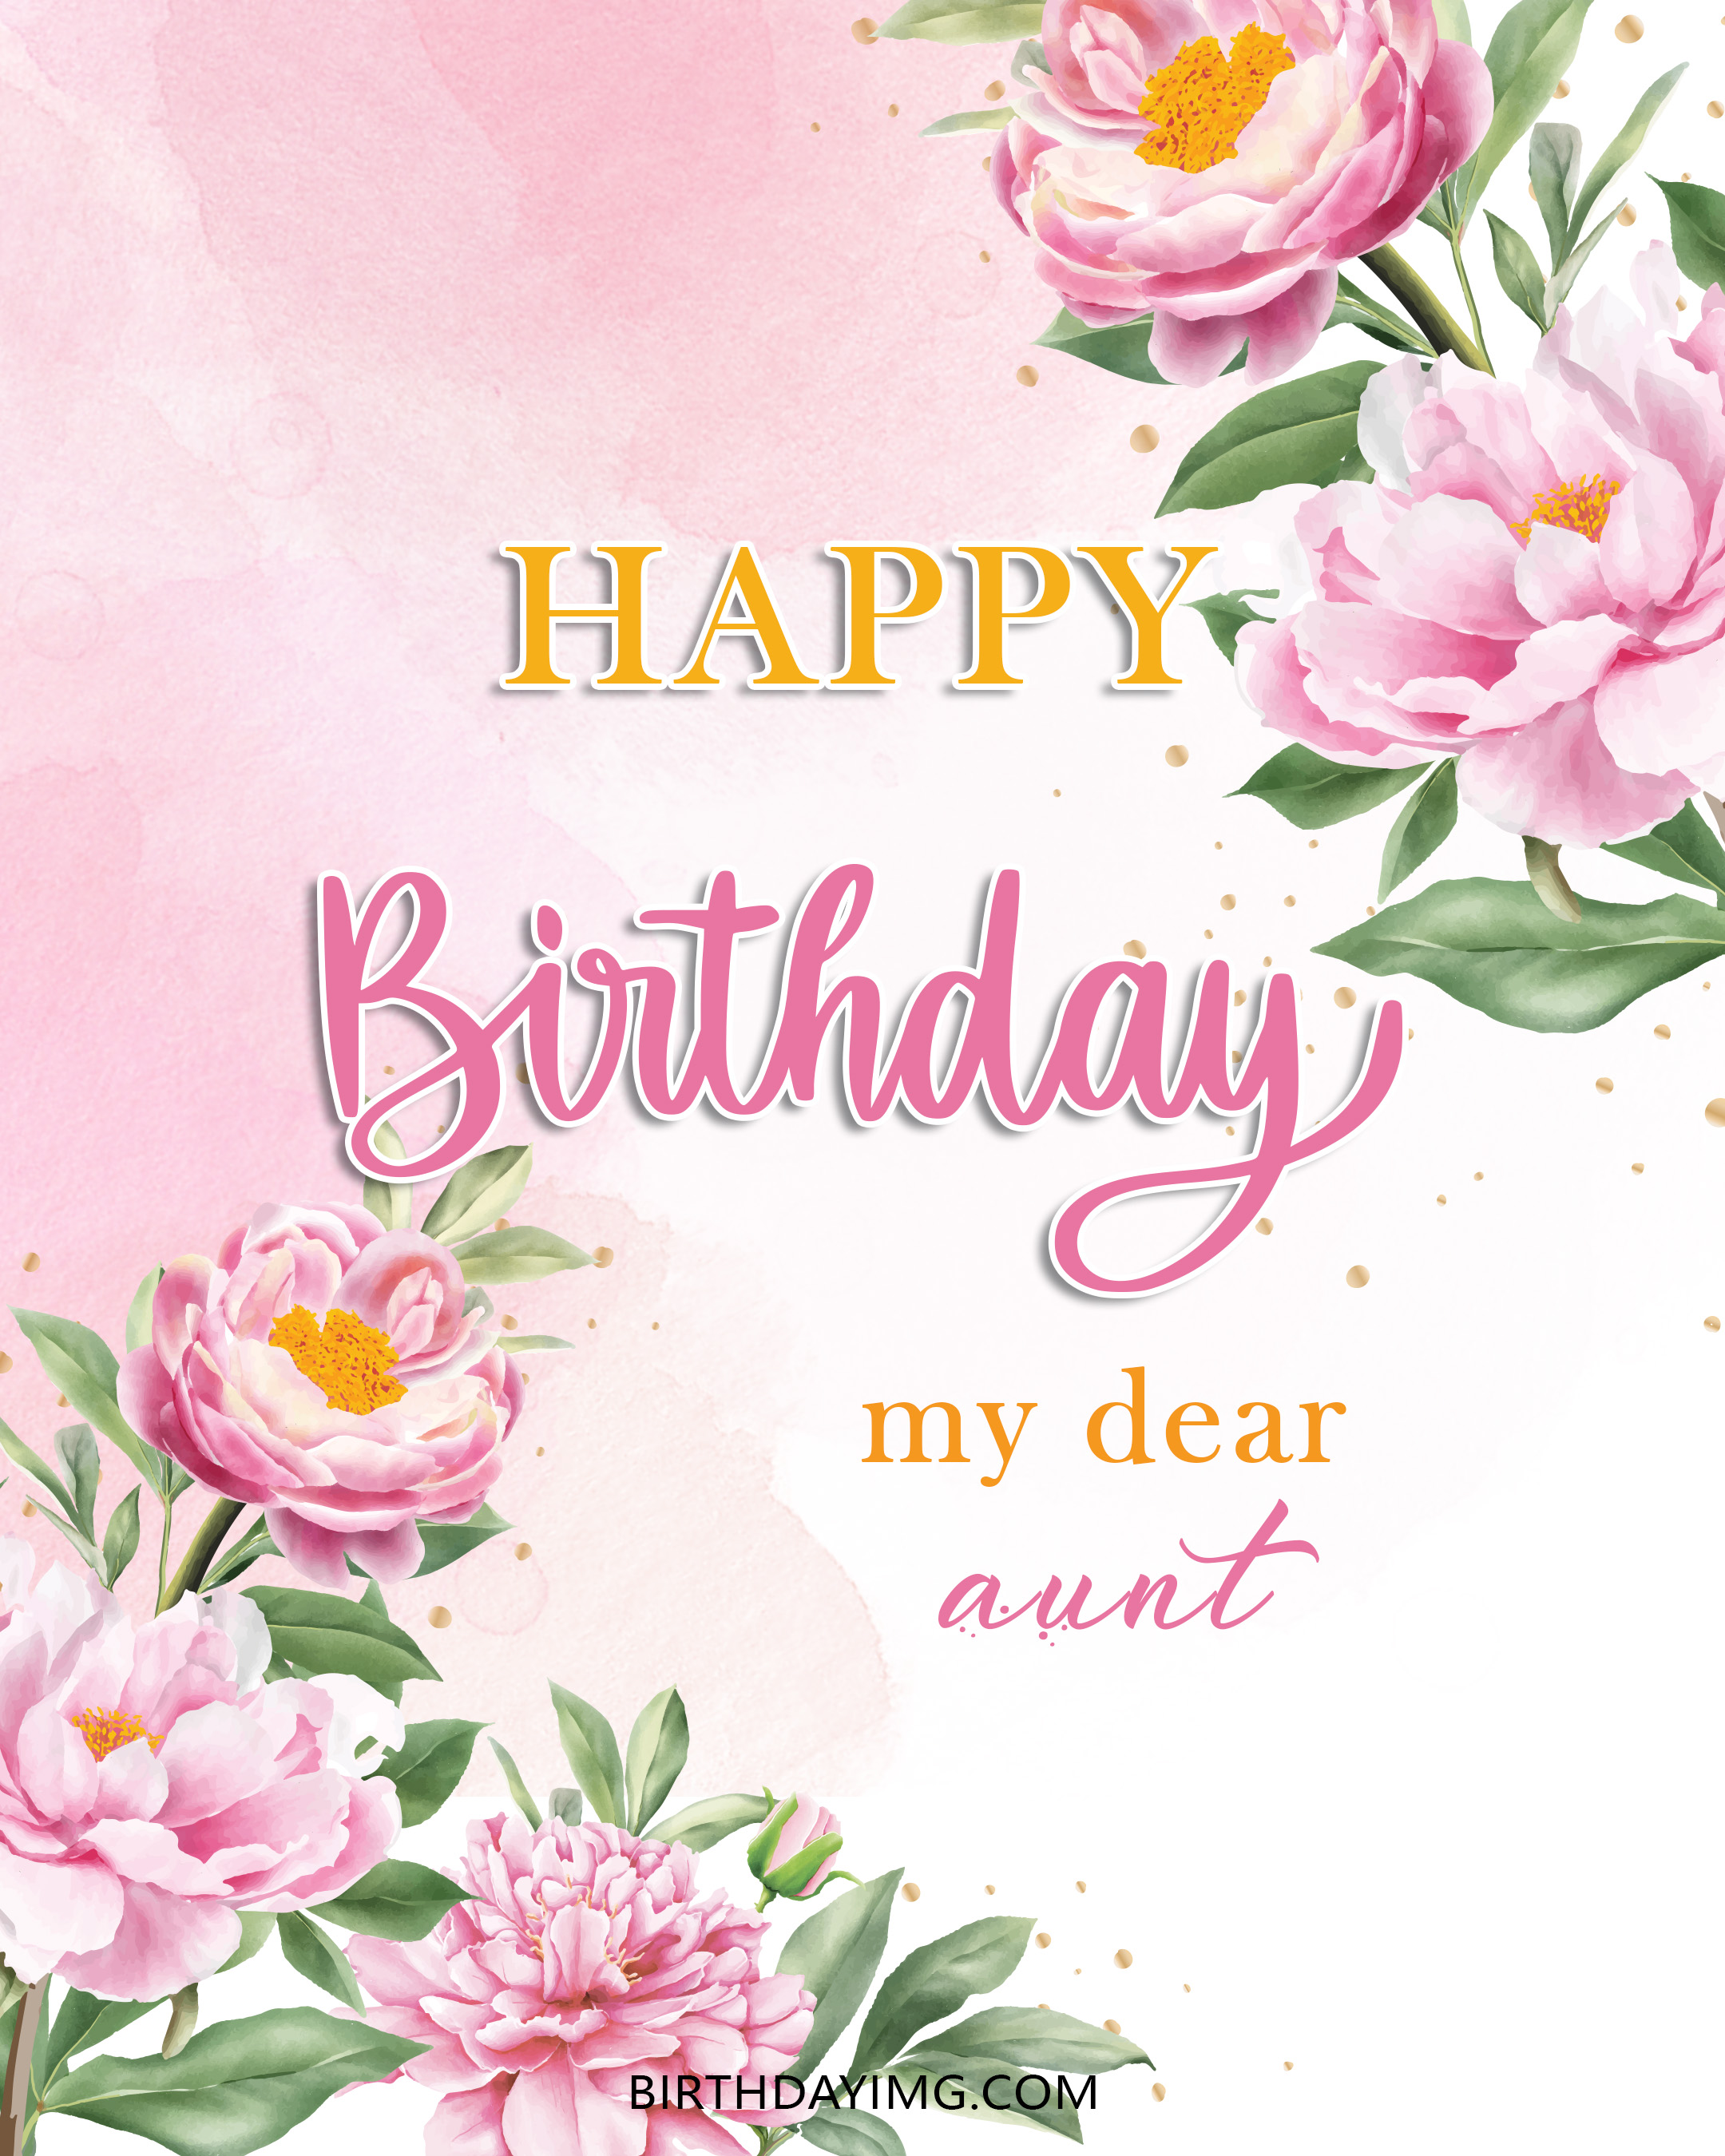 Free Happy Birthday Image For Aunt With Pink Flowers - birthdayimg.com